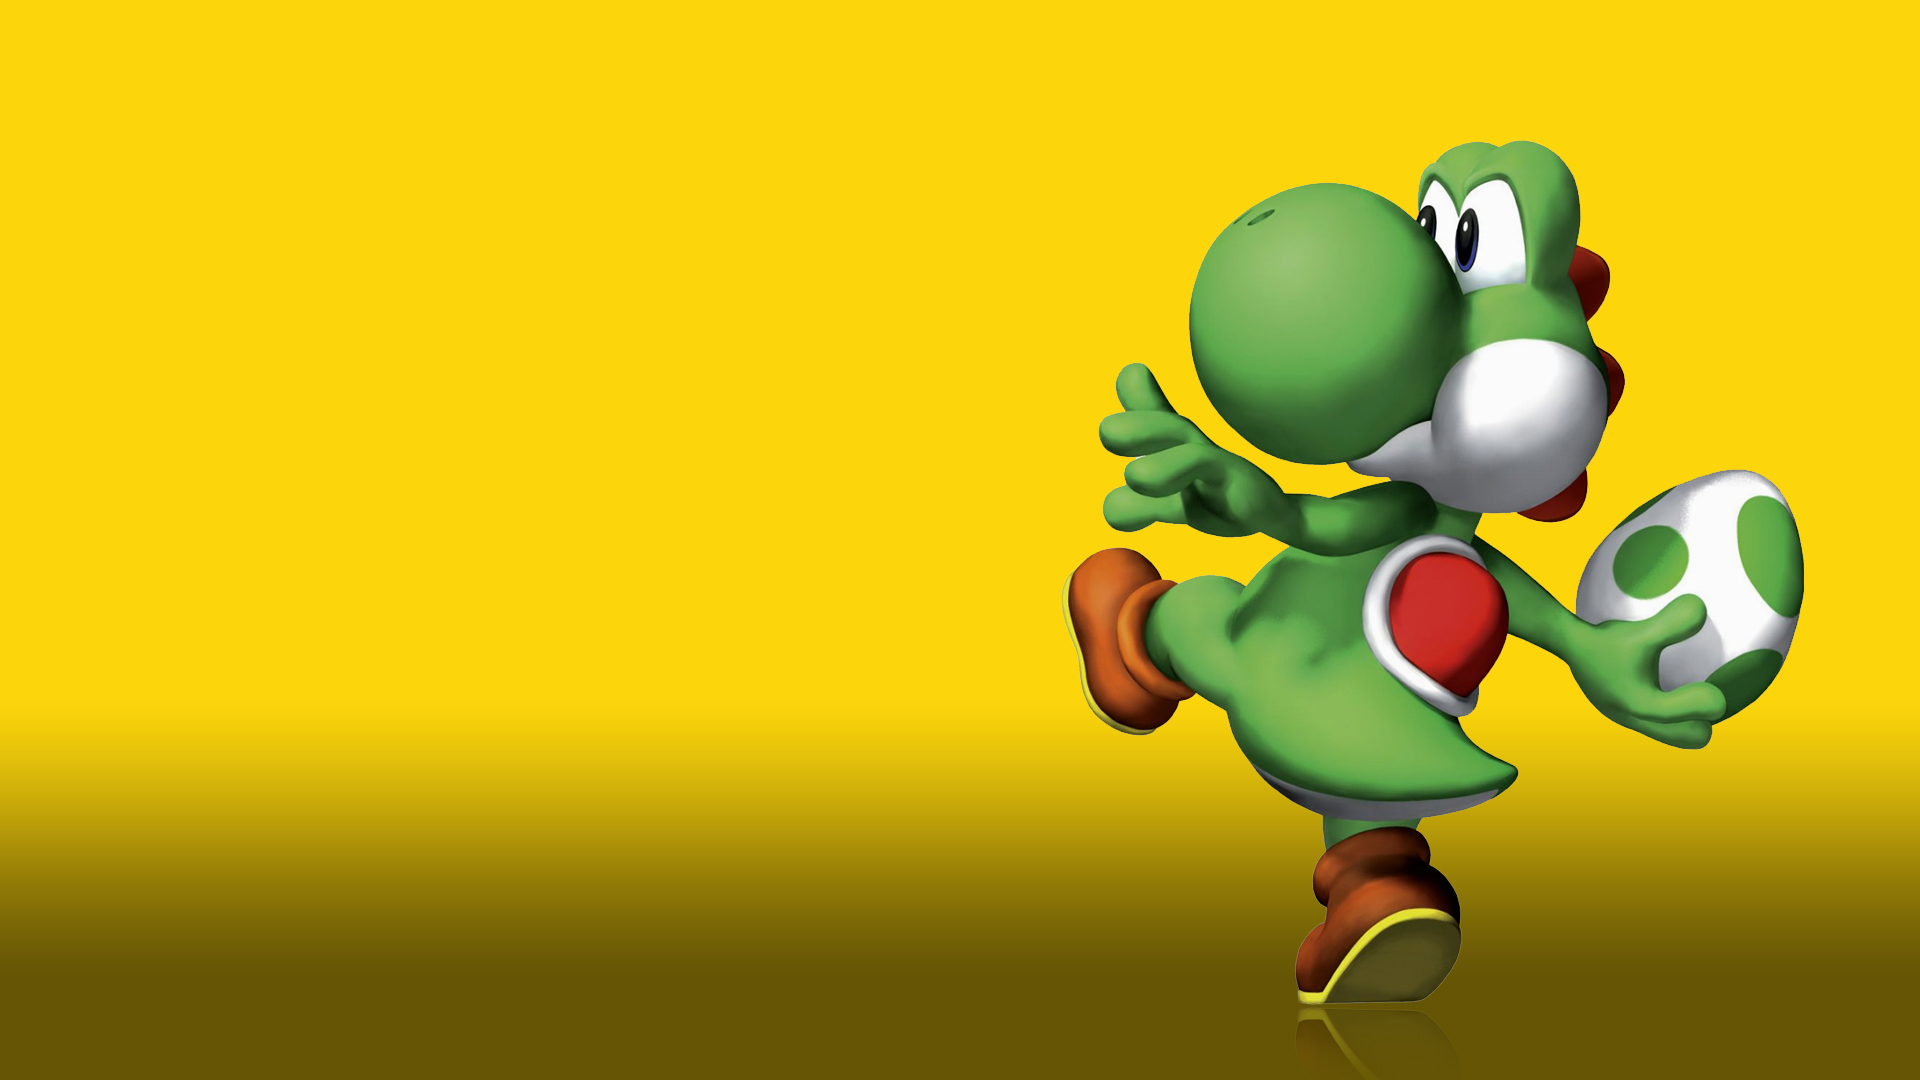 Yoshi Wallpapers for PC, HVGA 3:2, TGW P 88 Wallpapers